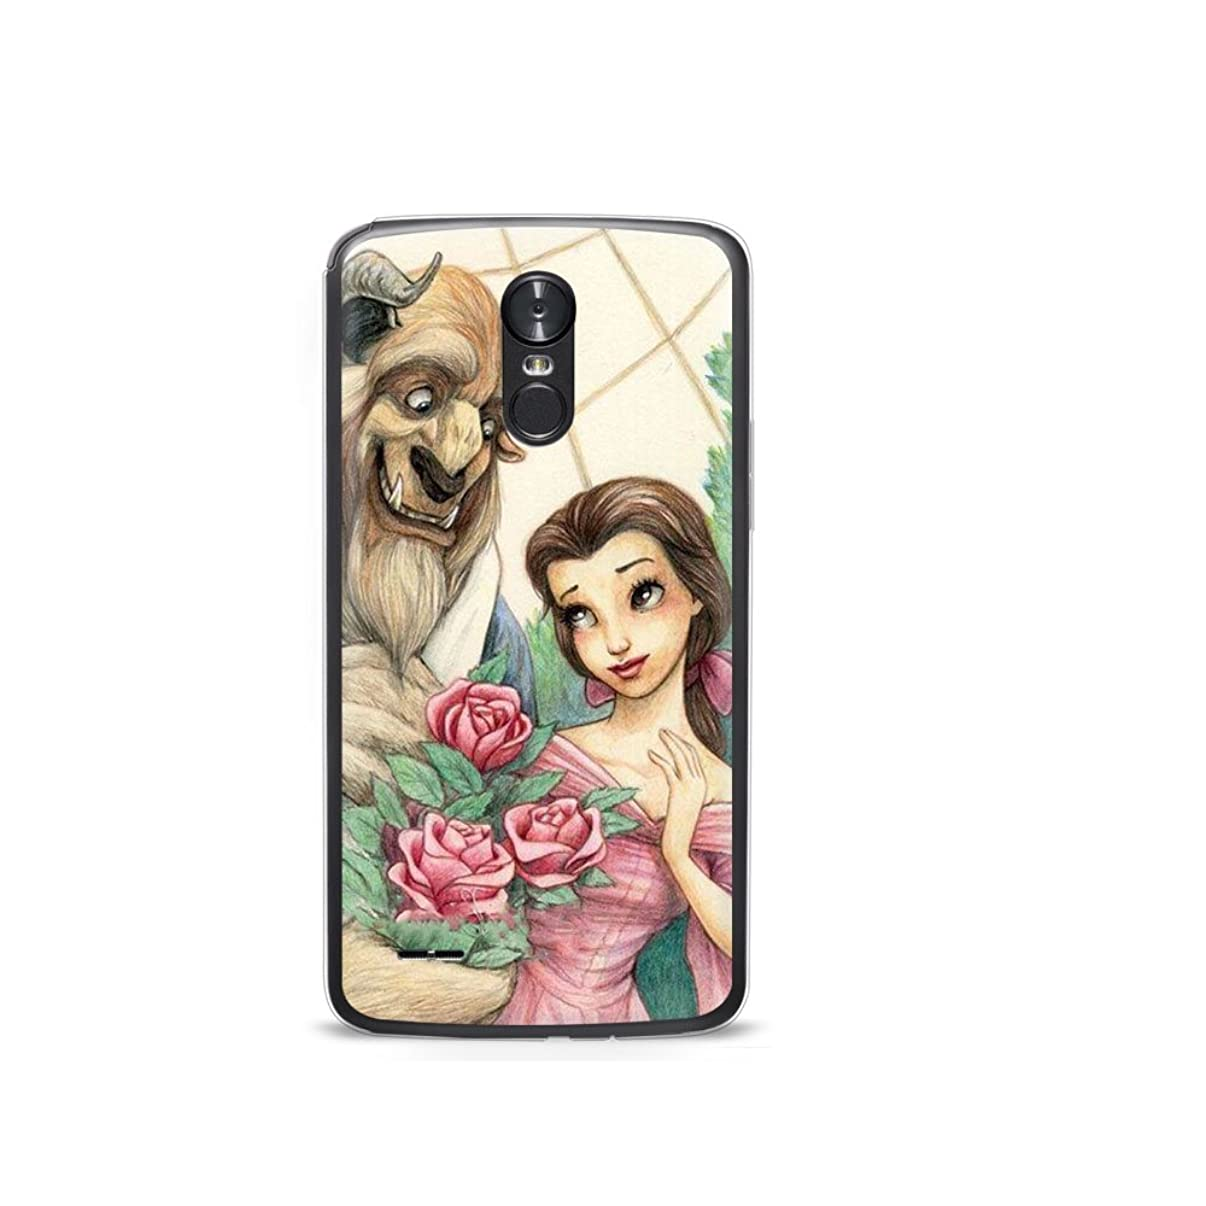 GSPSTORE LG K8 2017 Case Beauty and The Beast Cartoon Hard Plastic Protector iPhone Case Cover for K8 2017/LG Aristo/LG V3 MS210/LG LV3/LG Phoenix 3